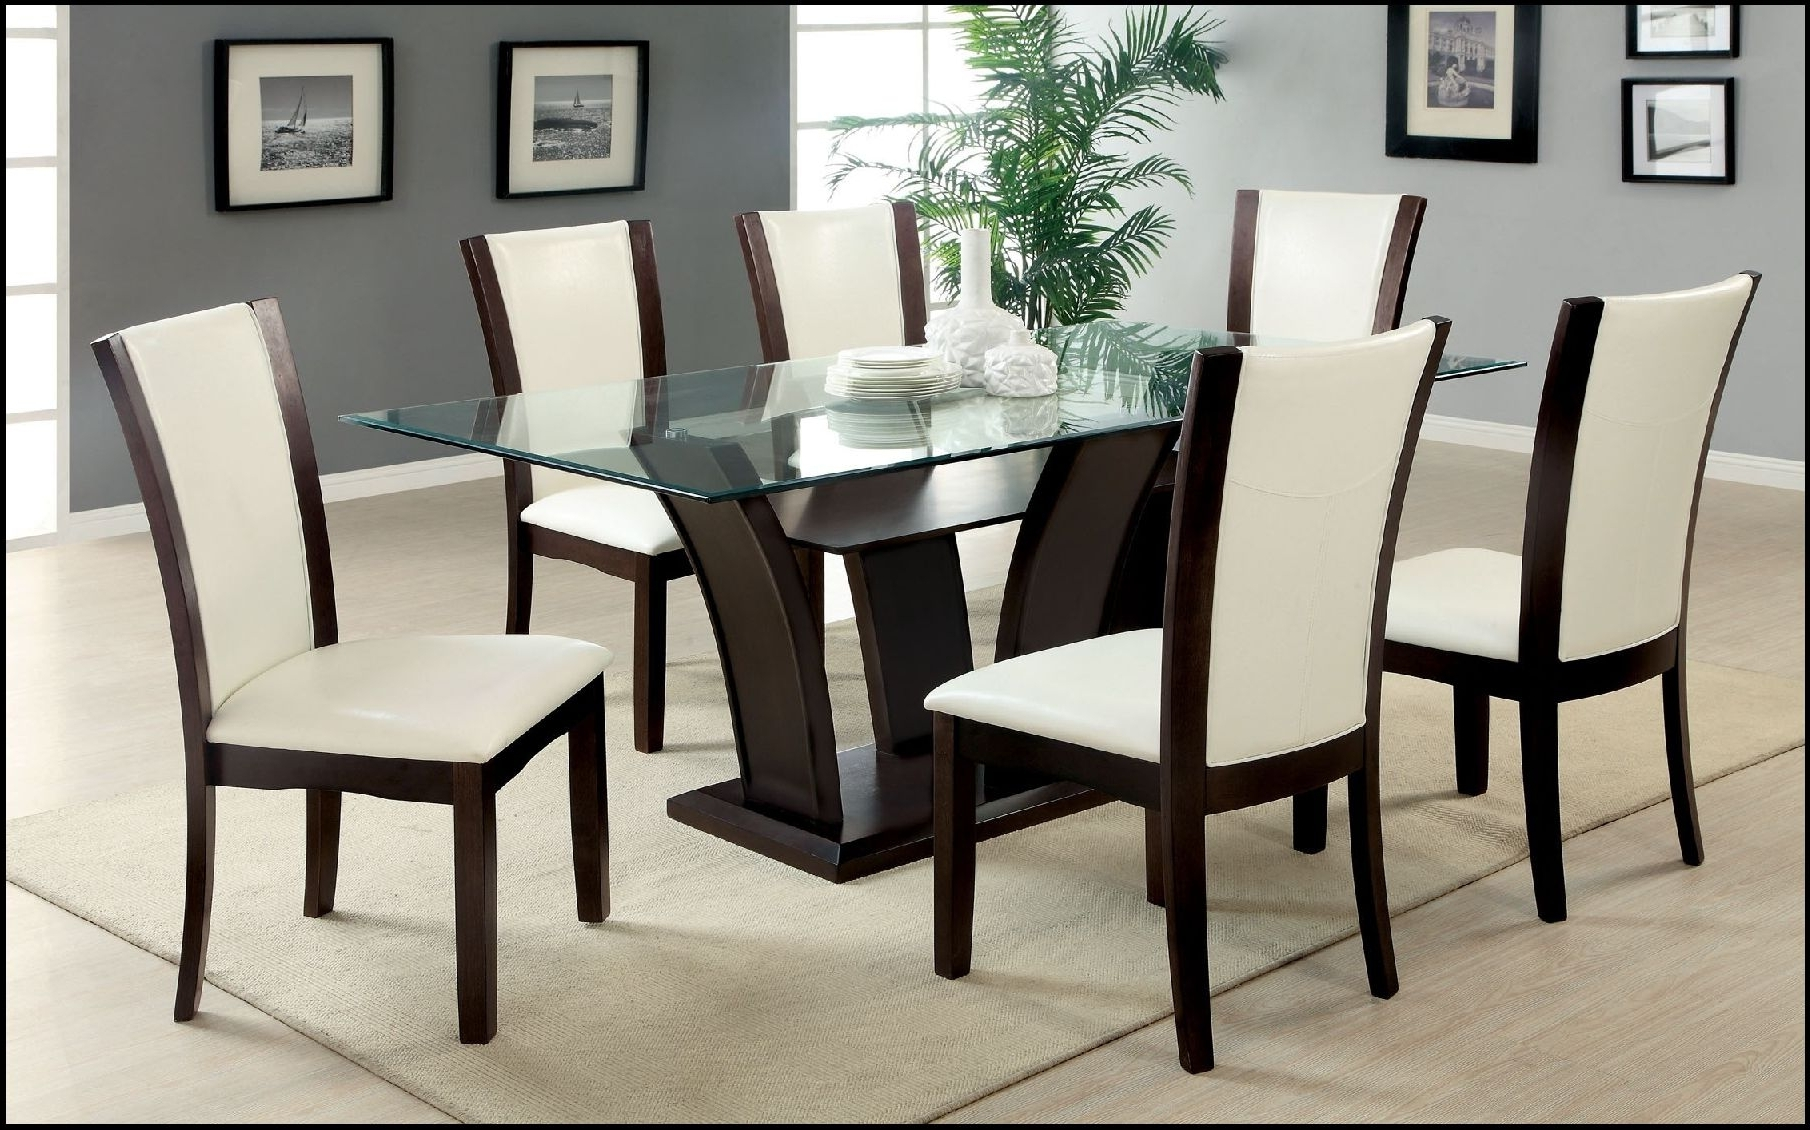 Widely Used 6 Seater Round Dining Tables Intended For Dining Table Set 6 Seater Round And Chairs Six Kitchen 4 Stunning (View 4 of 25)